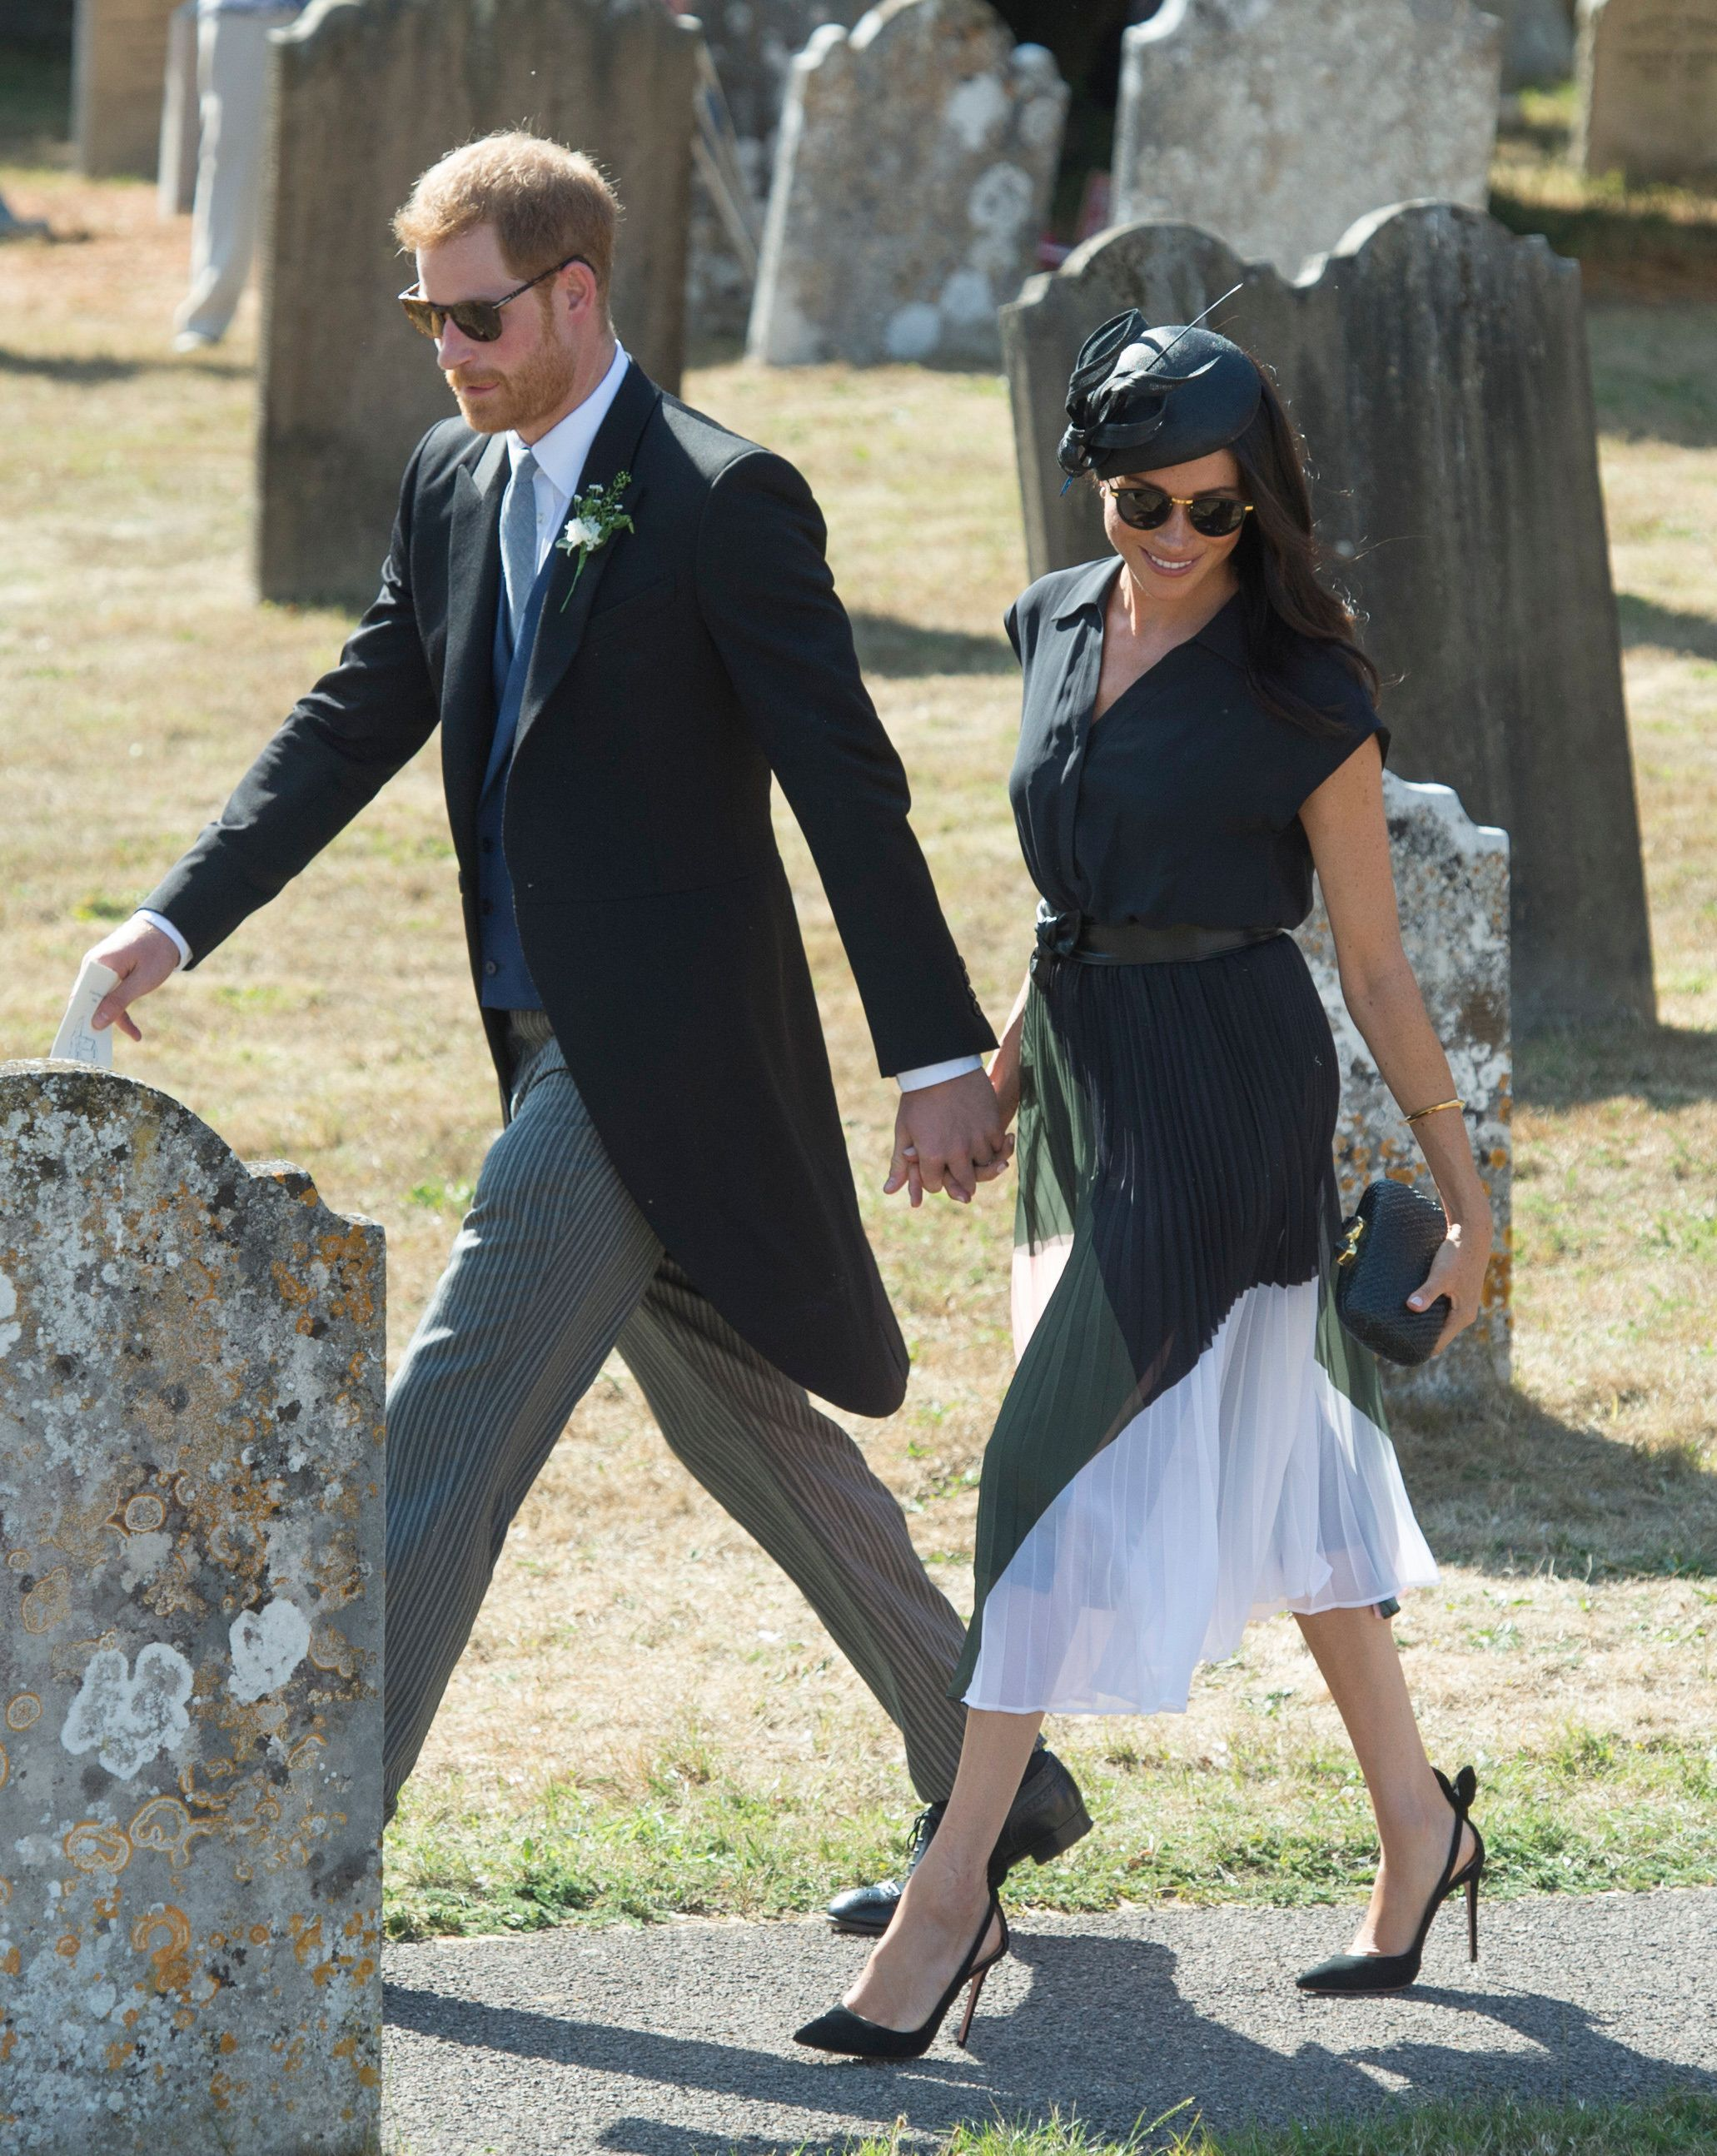 FRENSHAM, UNITED KINGDOM - AUGUST 04:  Prince Harry, Duke of Sussex and Meghan, Duchess of Sussex attend the wedding of Charlie Van Straubenzee and Daisy Jenks on August 4, 2018 in Frensham, United Kingdom. Prince Harry attended the same prep school as Charlie van Straubenzee and have been good friends ever since. (Photo by Antony Jones/Getty Images)